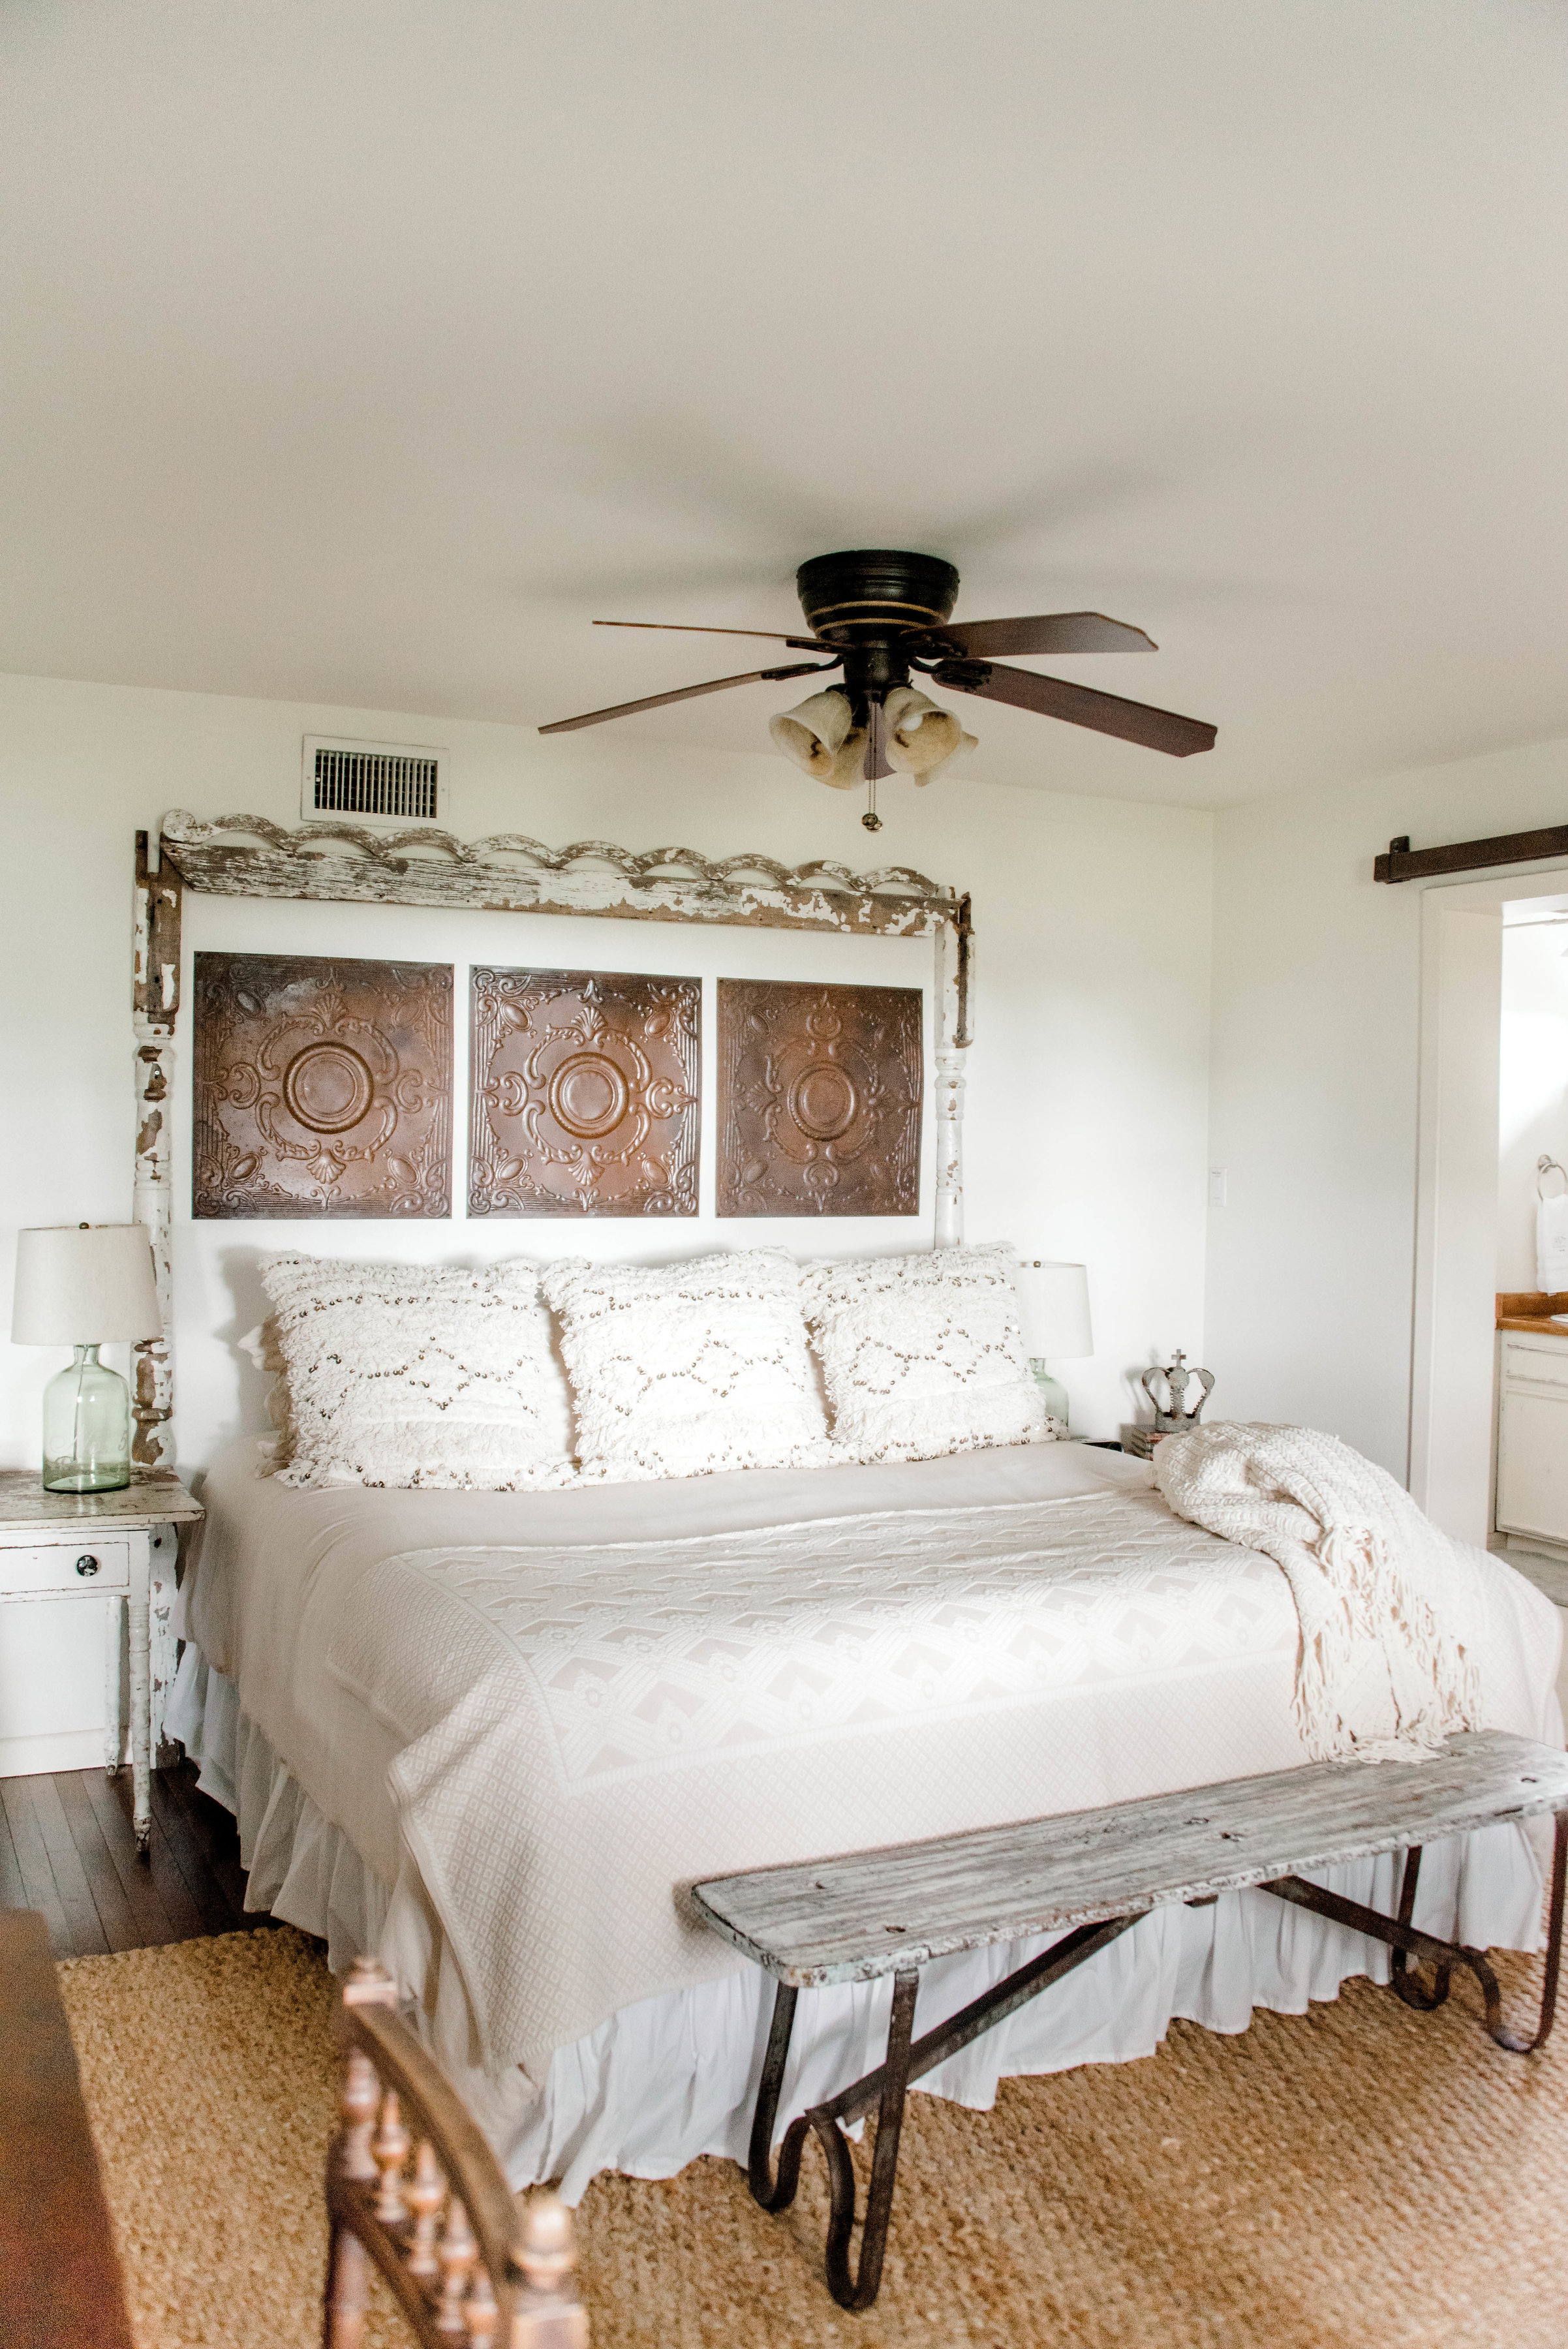 Where to Stay in Round Top, Texas | 1450